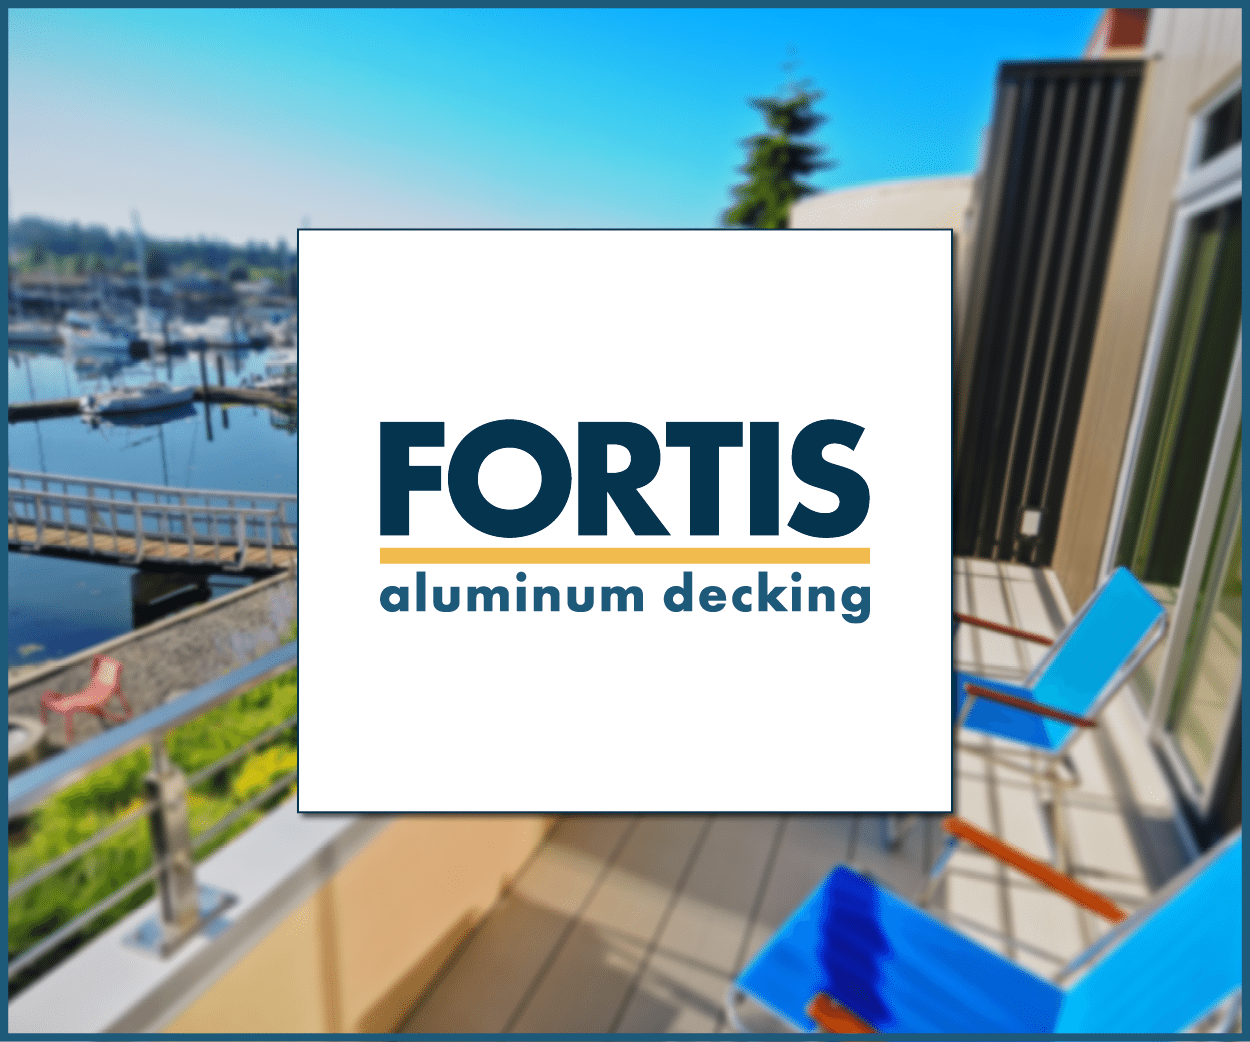 Fortis Aluminum decking interlocking deck boardsystem